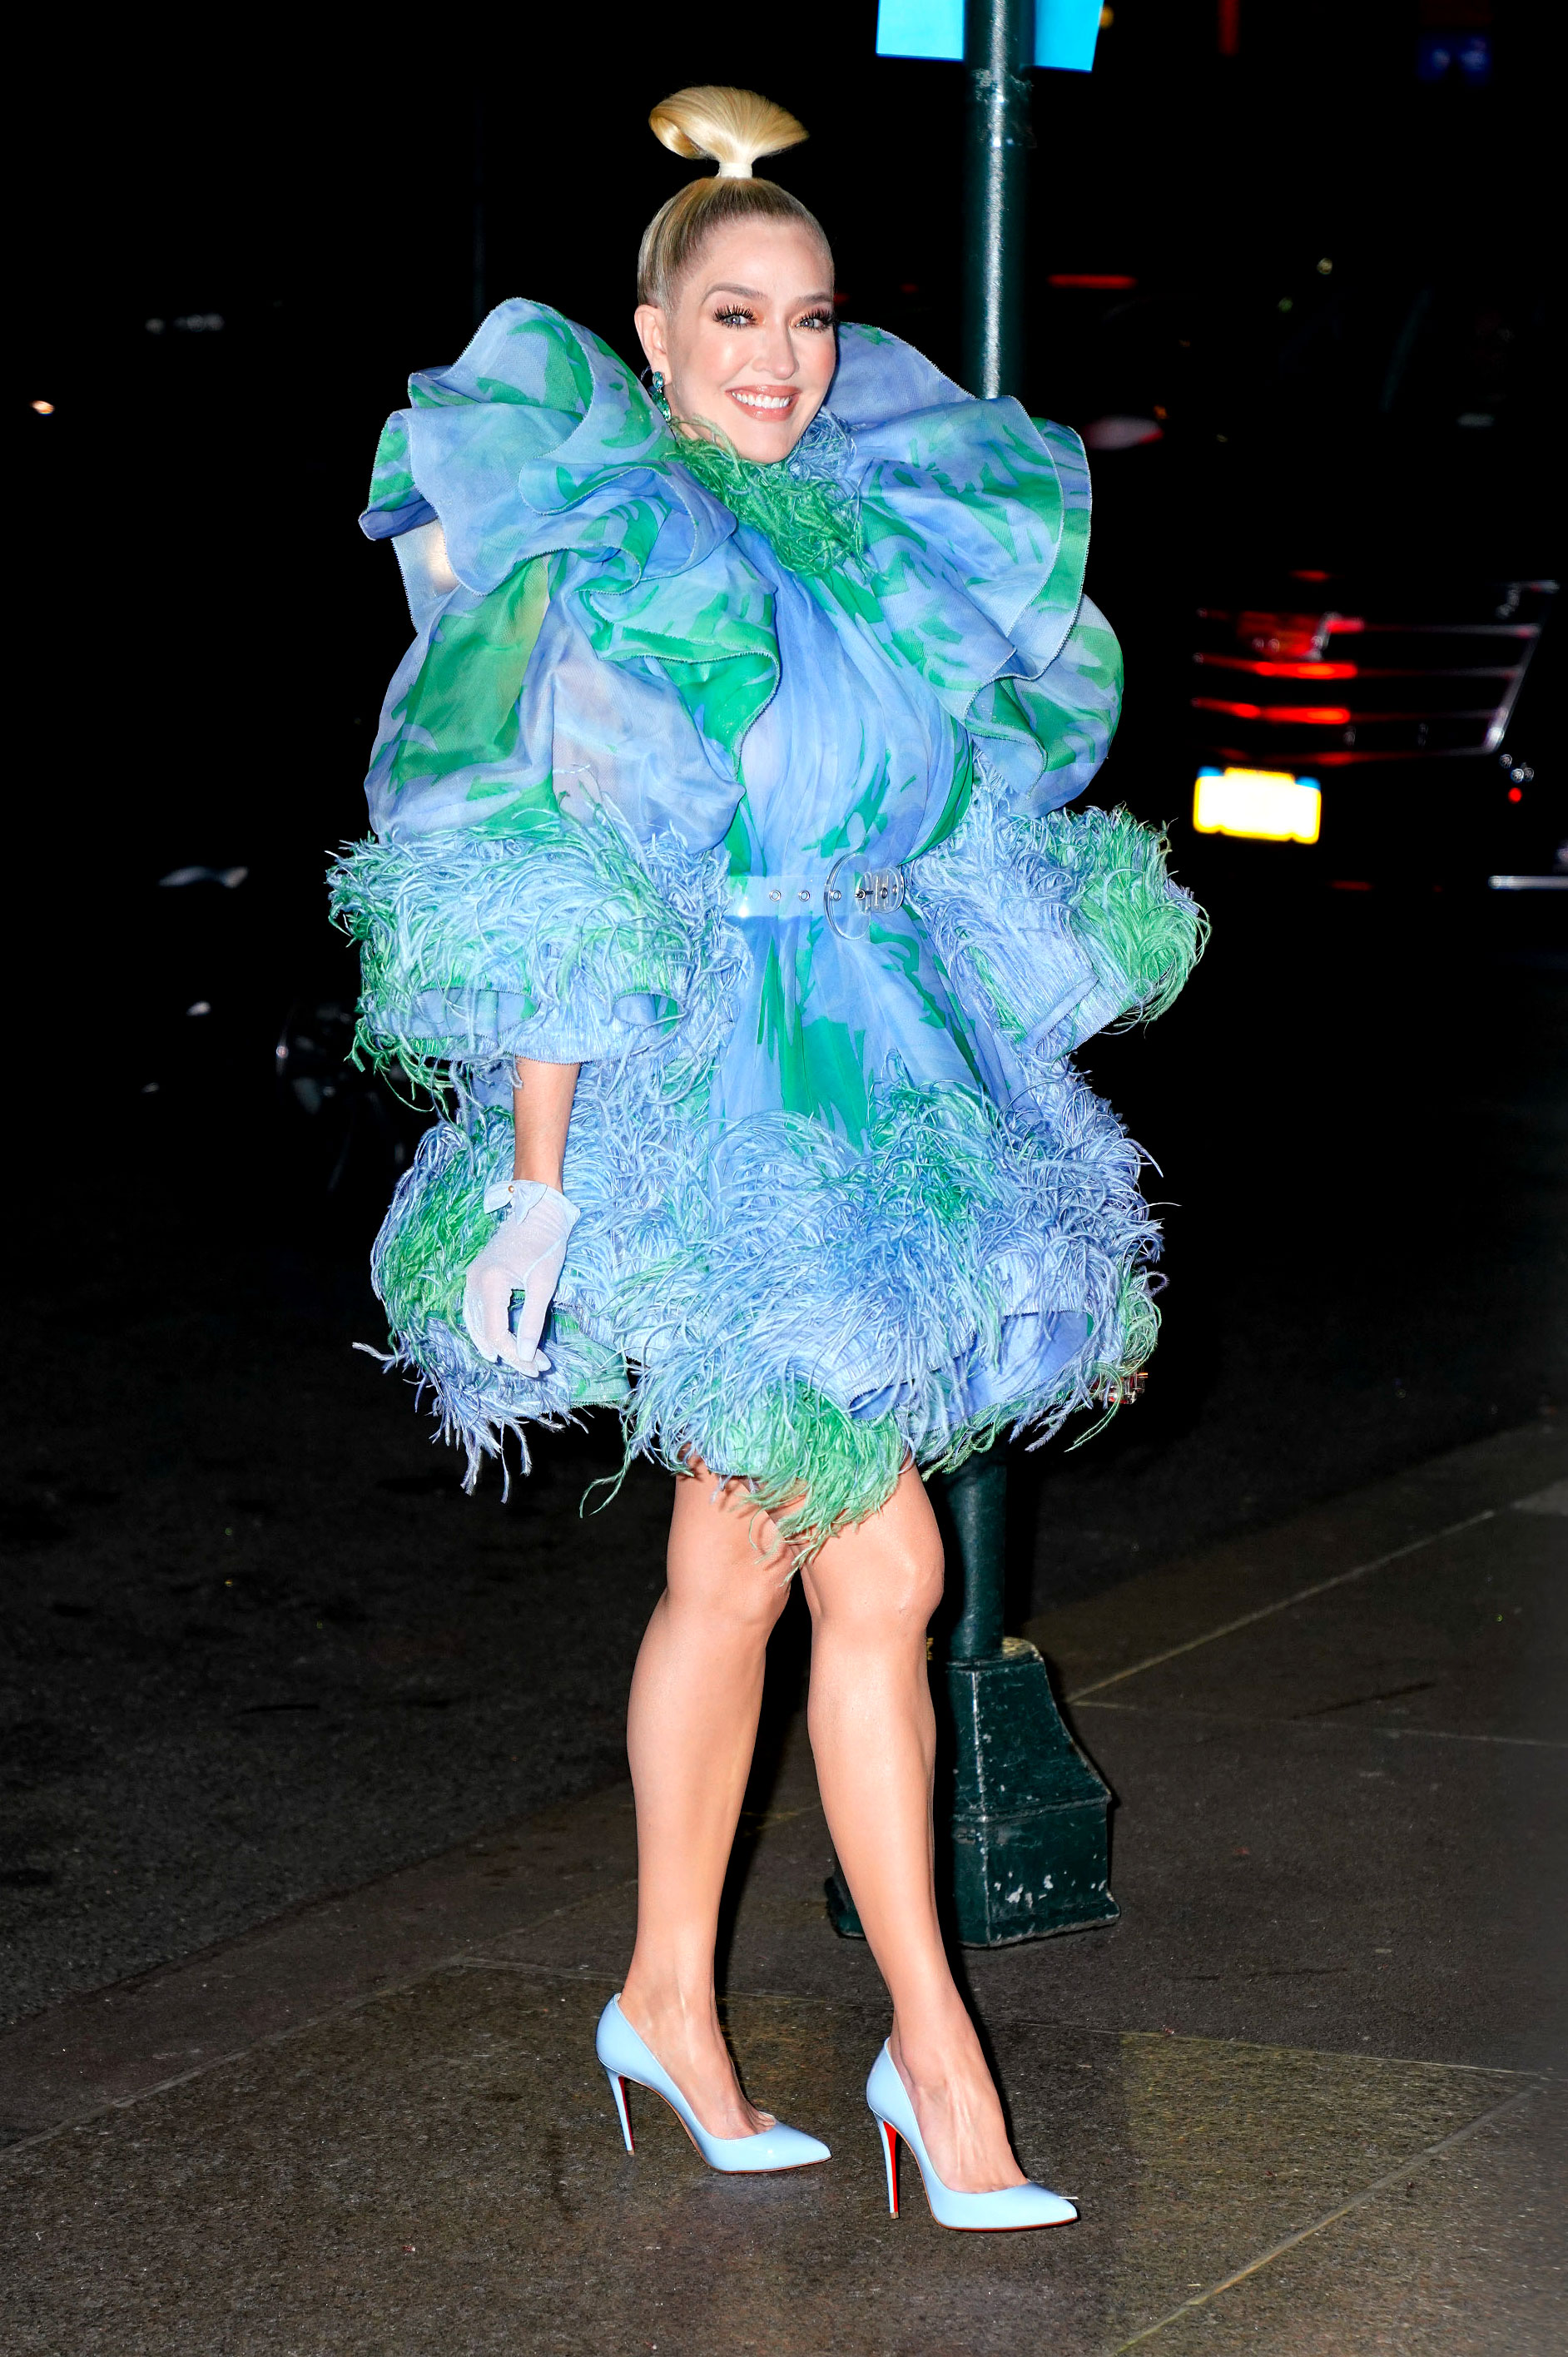 Marc-Jacob-and-Char-DeFrancesco-wedding-reception Erica Jayne - Real Housewives of Beverly Hills star Erika Jayne made a statement with a blue and green, puffy mini-dress.